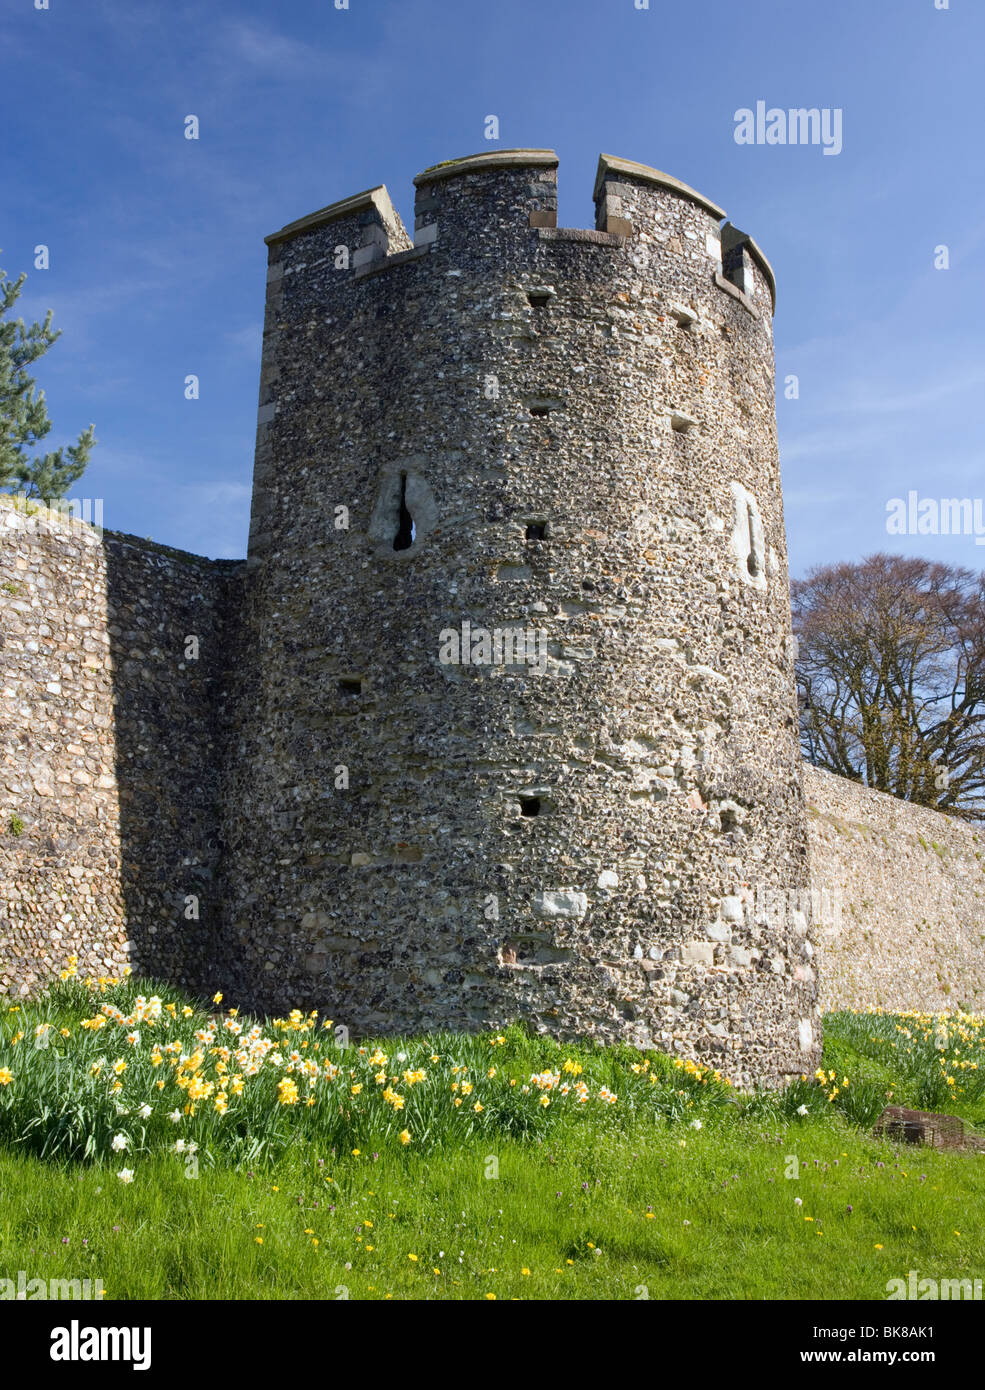 Canterbury's city wall and watch tower in Canterbury, Kent, UK. - Stock Image